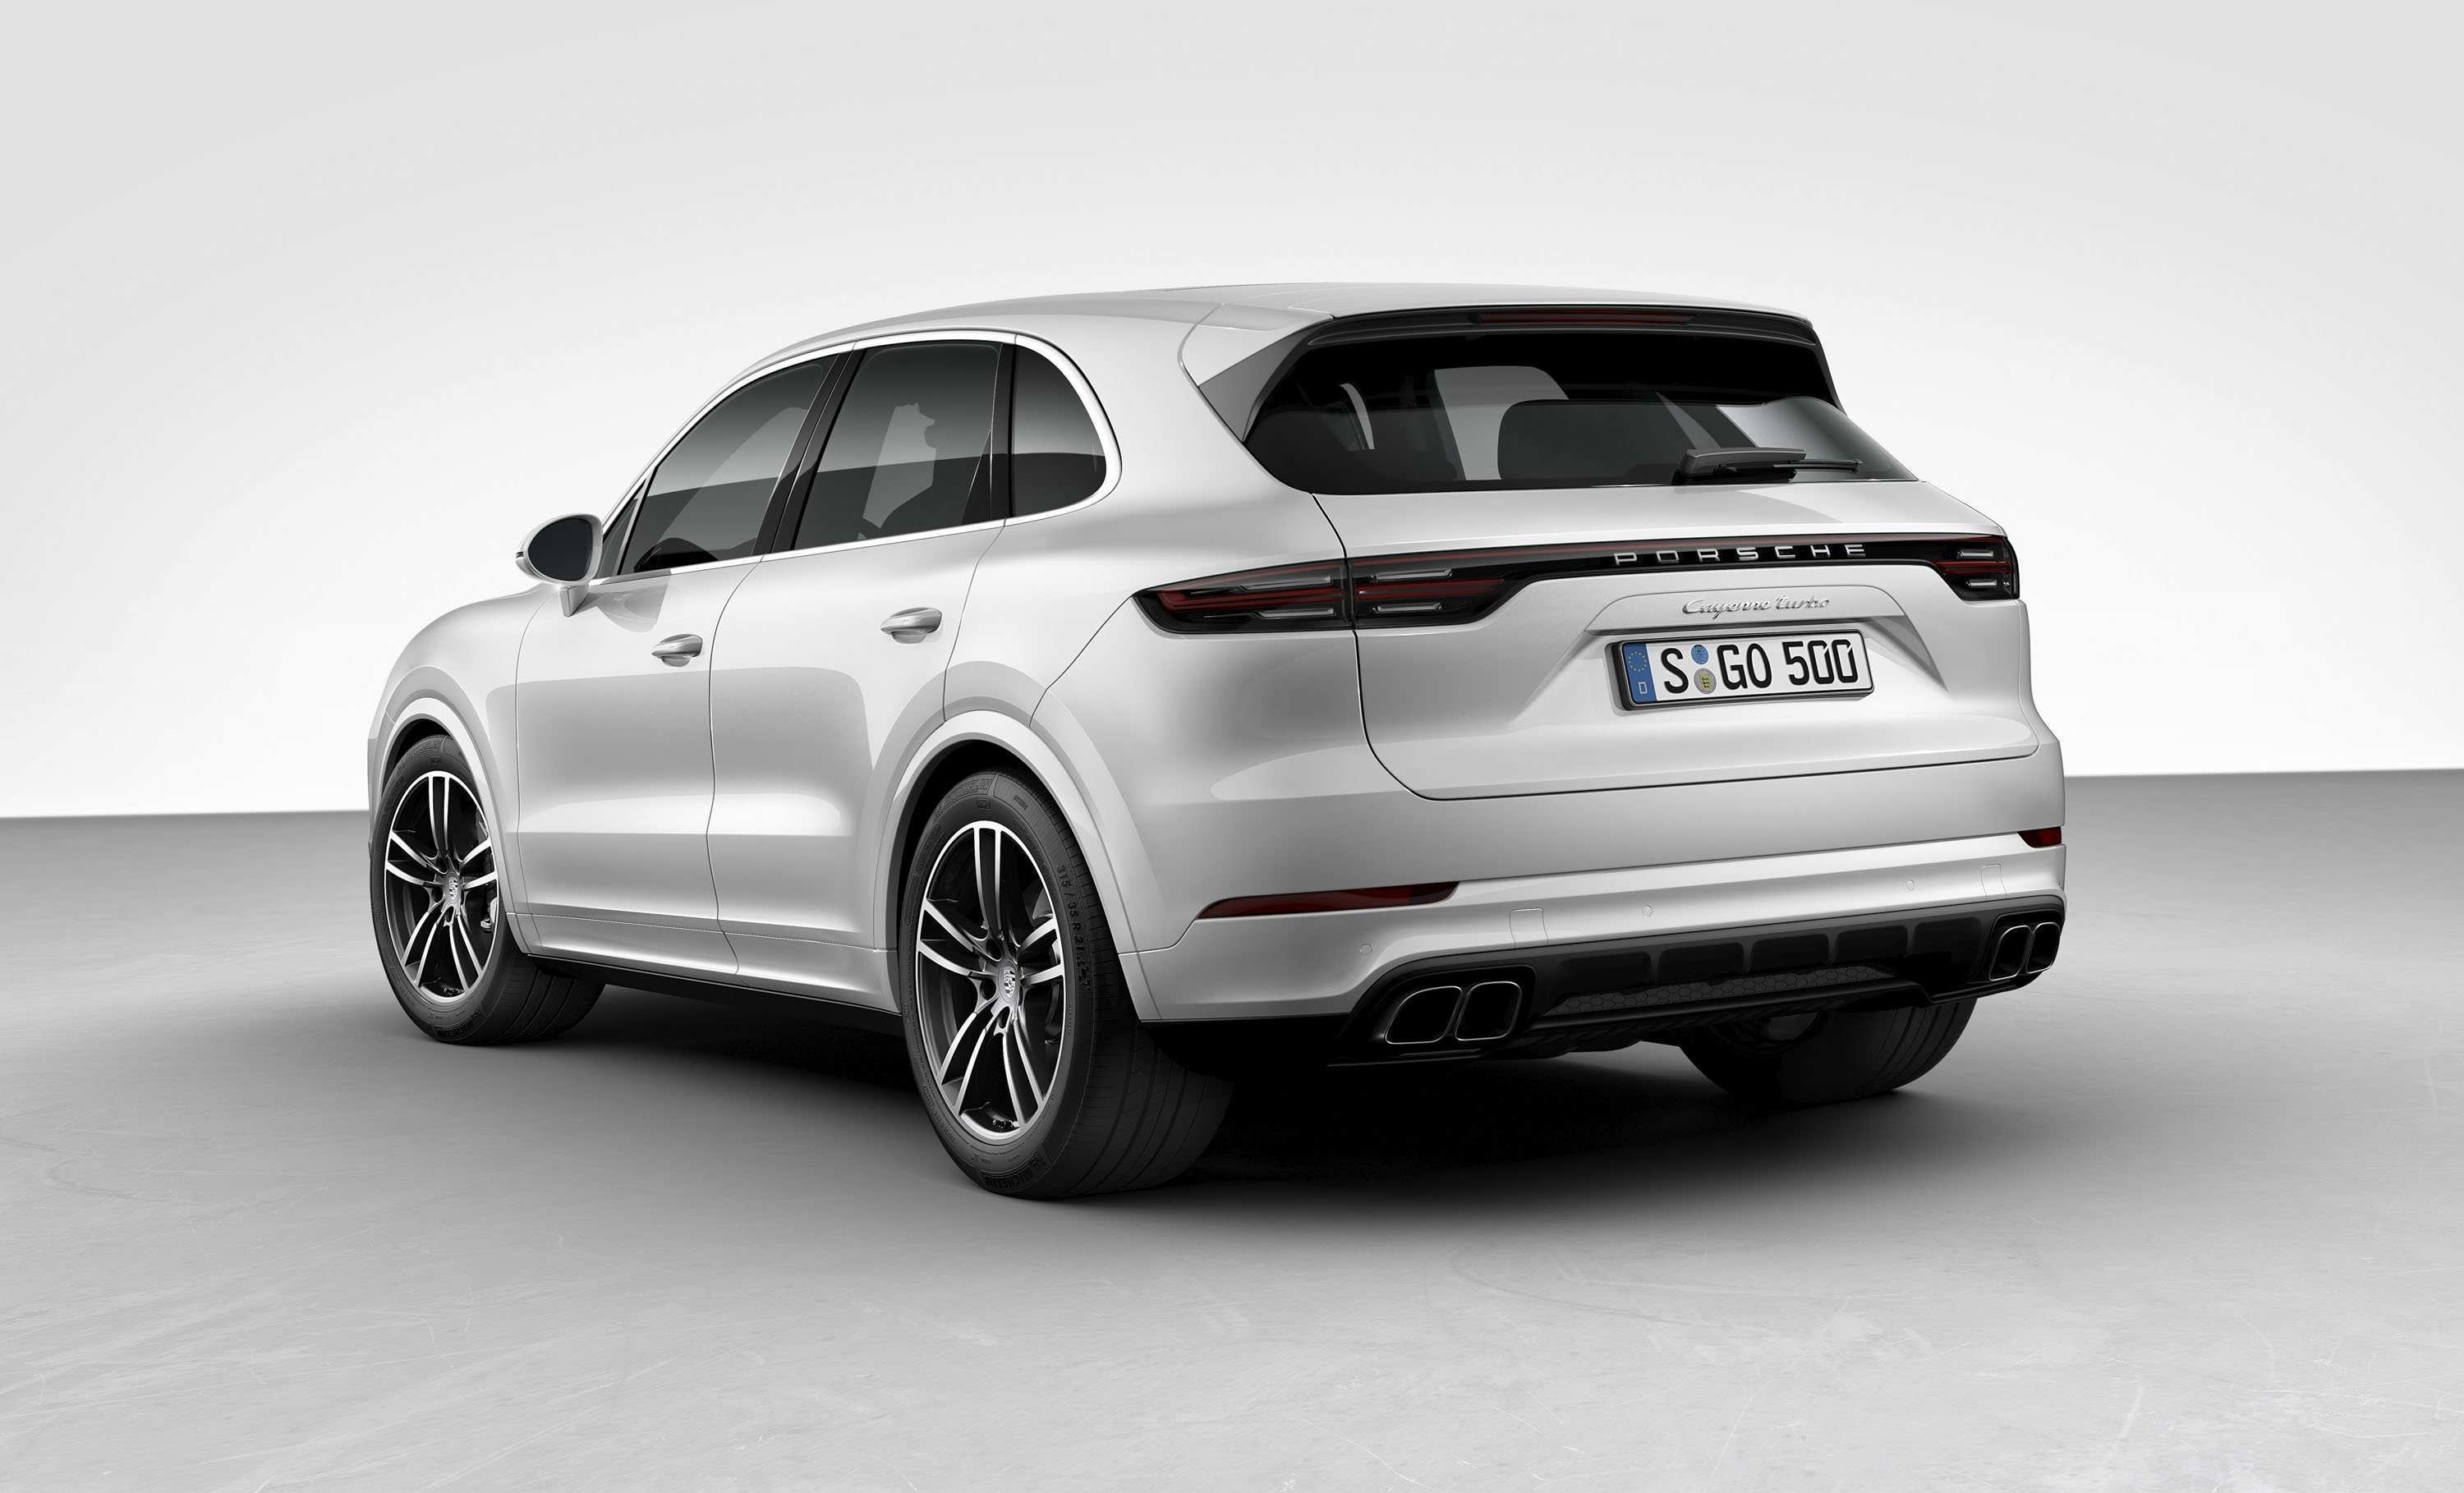 40 The 2018 Vs 2019 Porsche Cayenne Model for 2018 Vs 2019 Porsche Cayenne